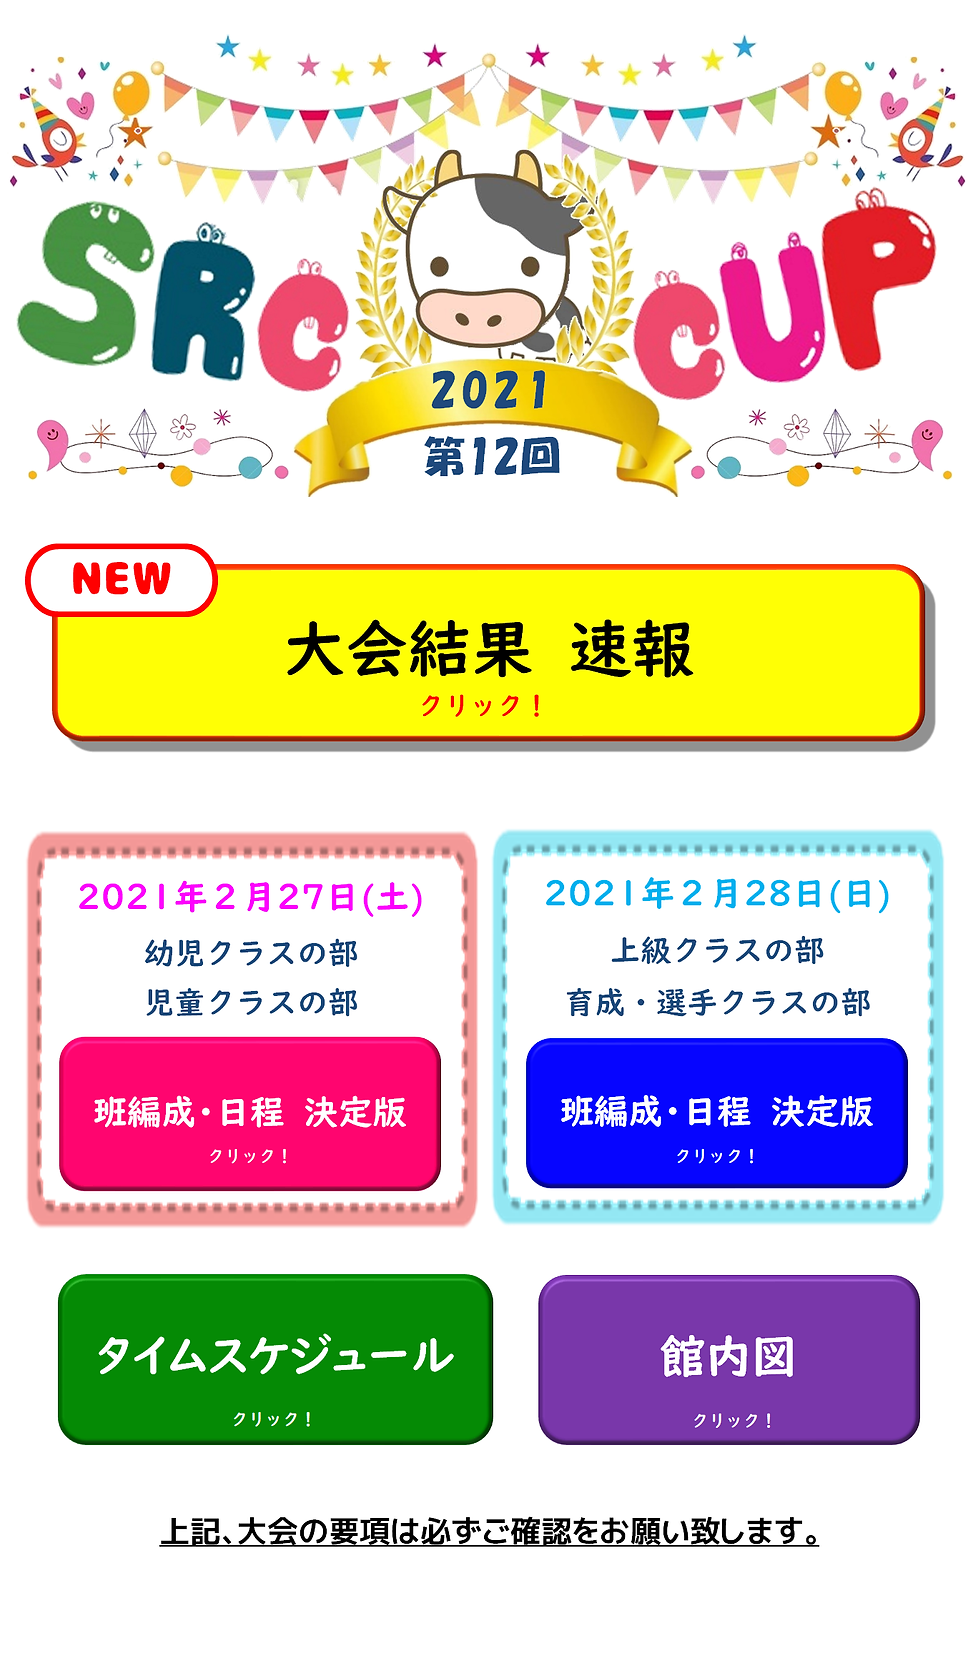 SRCcupページ12 速報.png